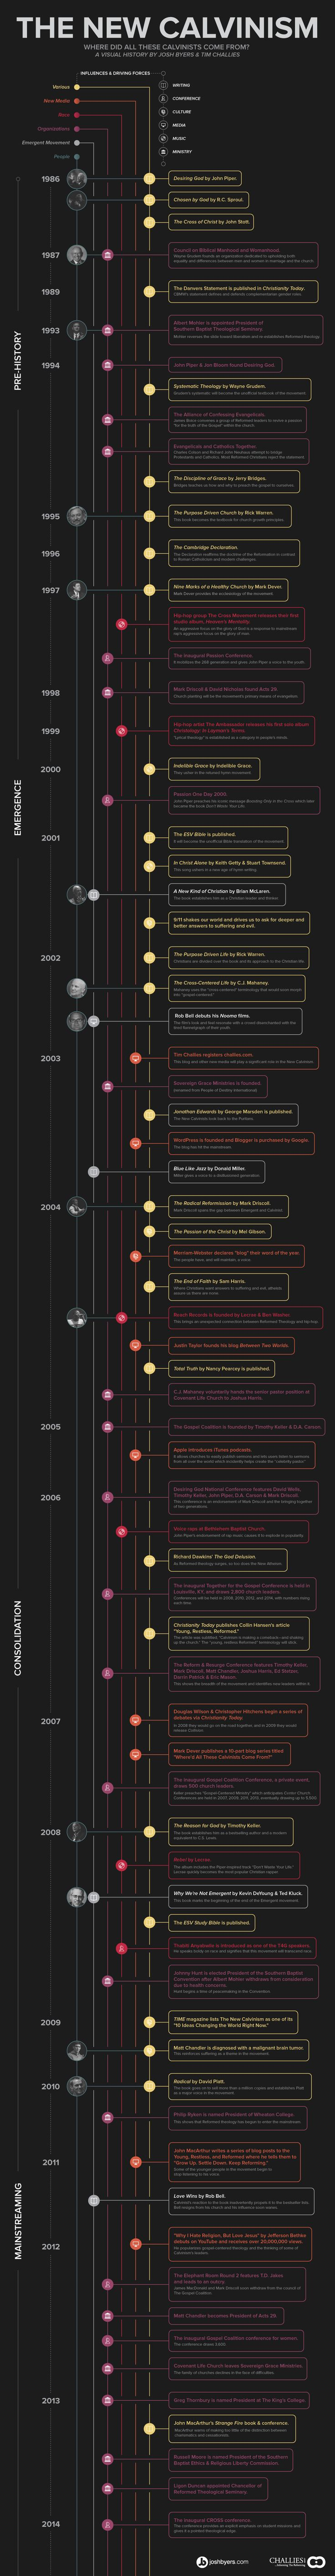 A thematic timeline of the New Calvinism.